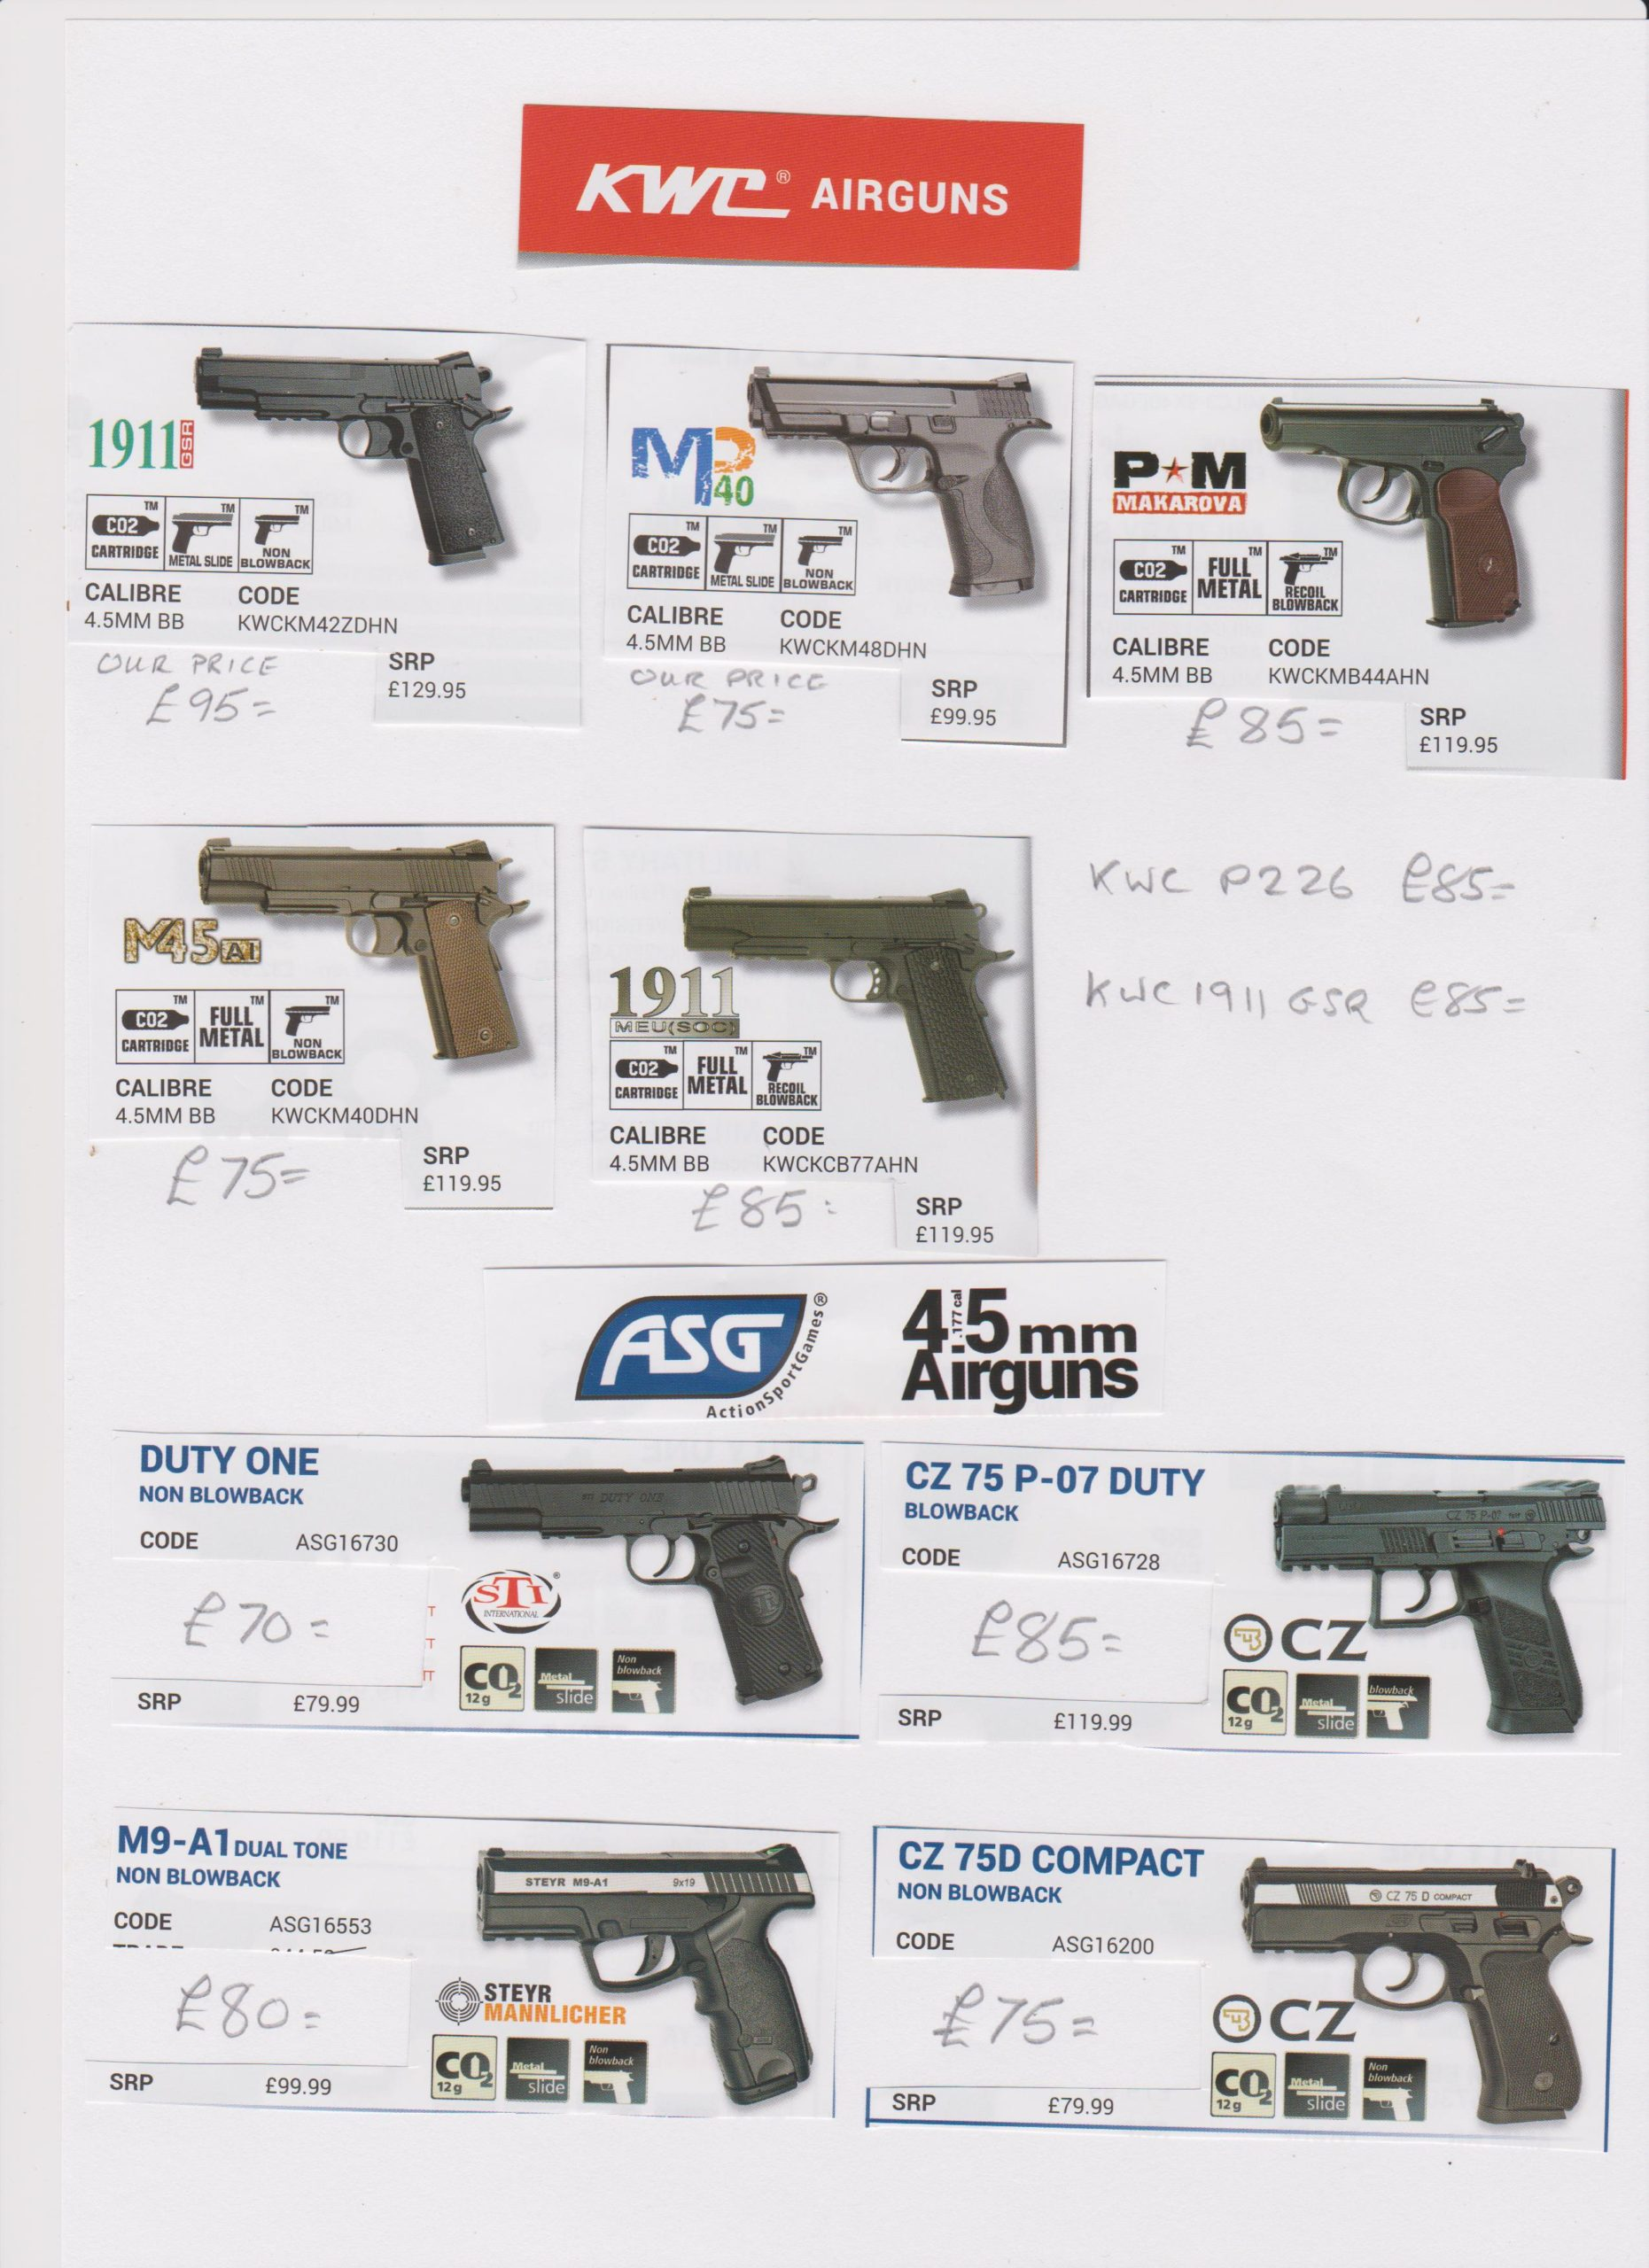 Kwc pistols we have in stock (PICTURES ON THE SMK WEB SITE) Image